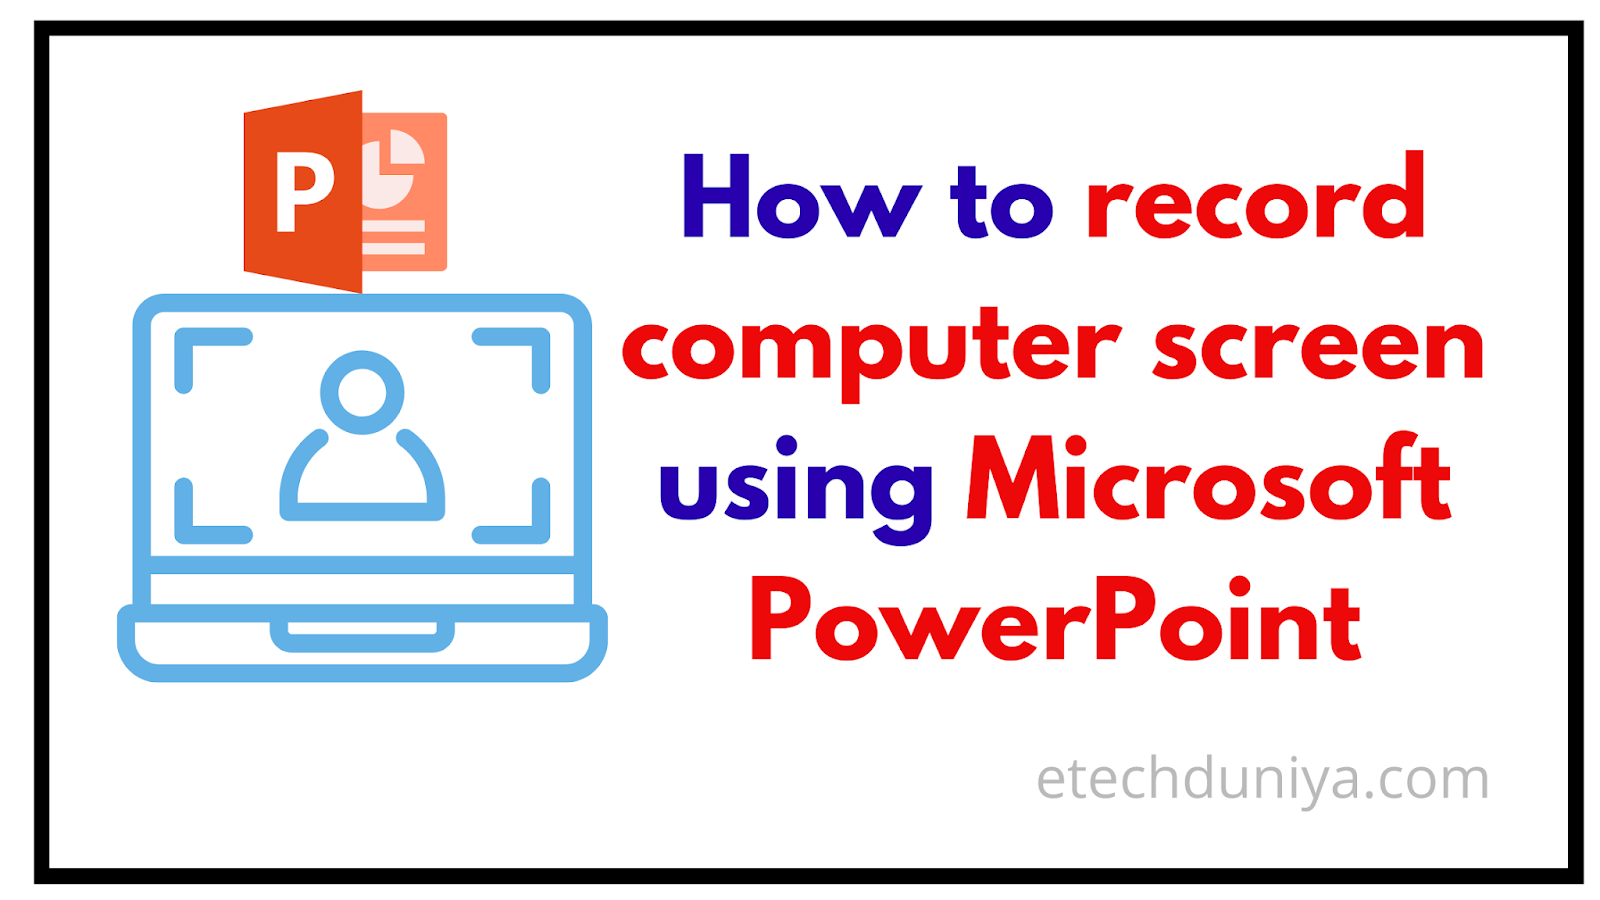 How to record computer screen using Microsoft PowerPoint